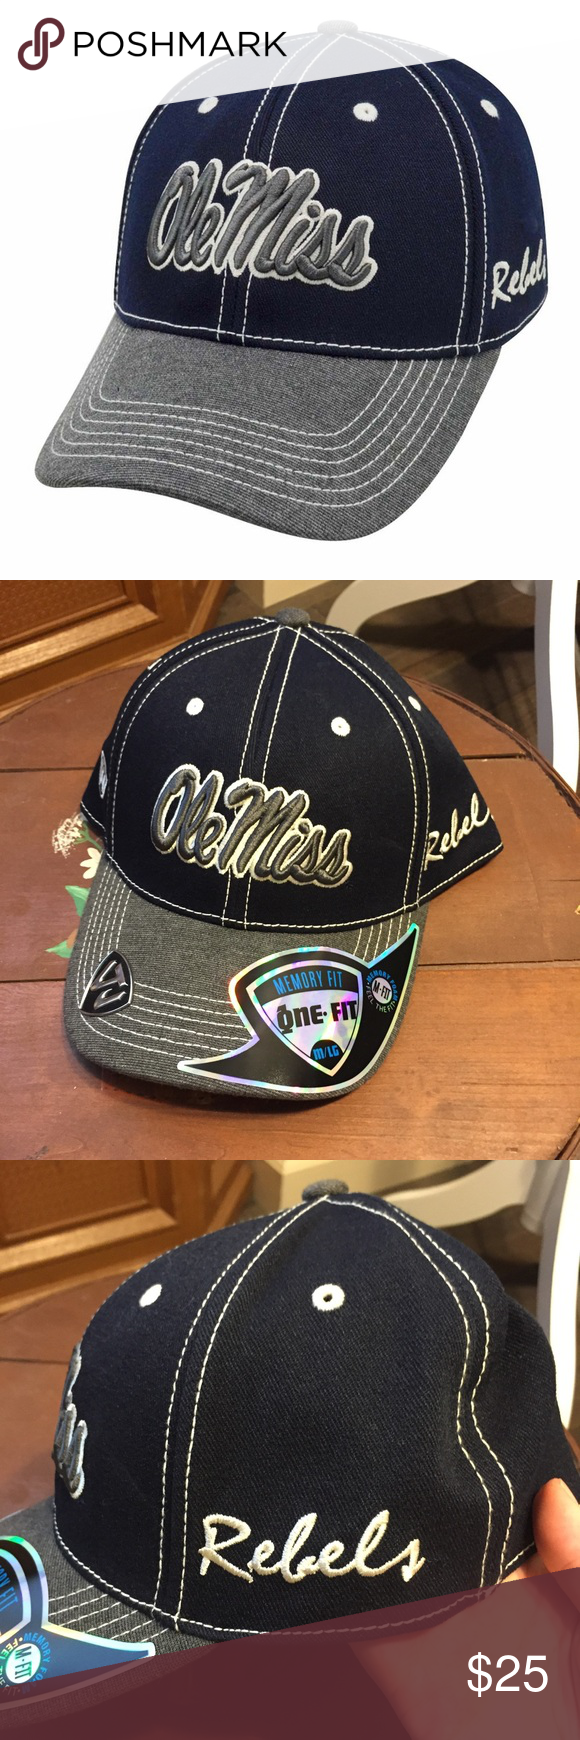 release date a0d5d 9eade Ole Miss Rebels High Post Hat M L NWT NCAA Brand new with tags!  ygwyt002  Mississippi unisex men or women NCAA Accessories Hats